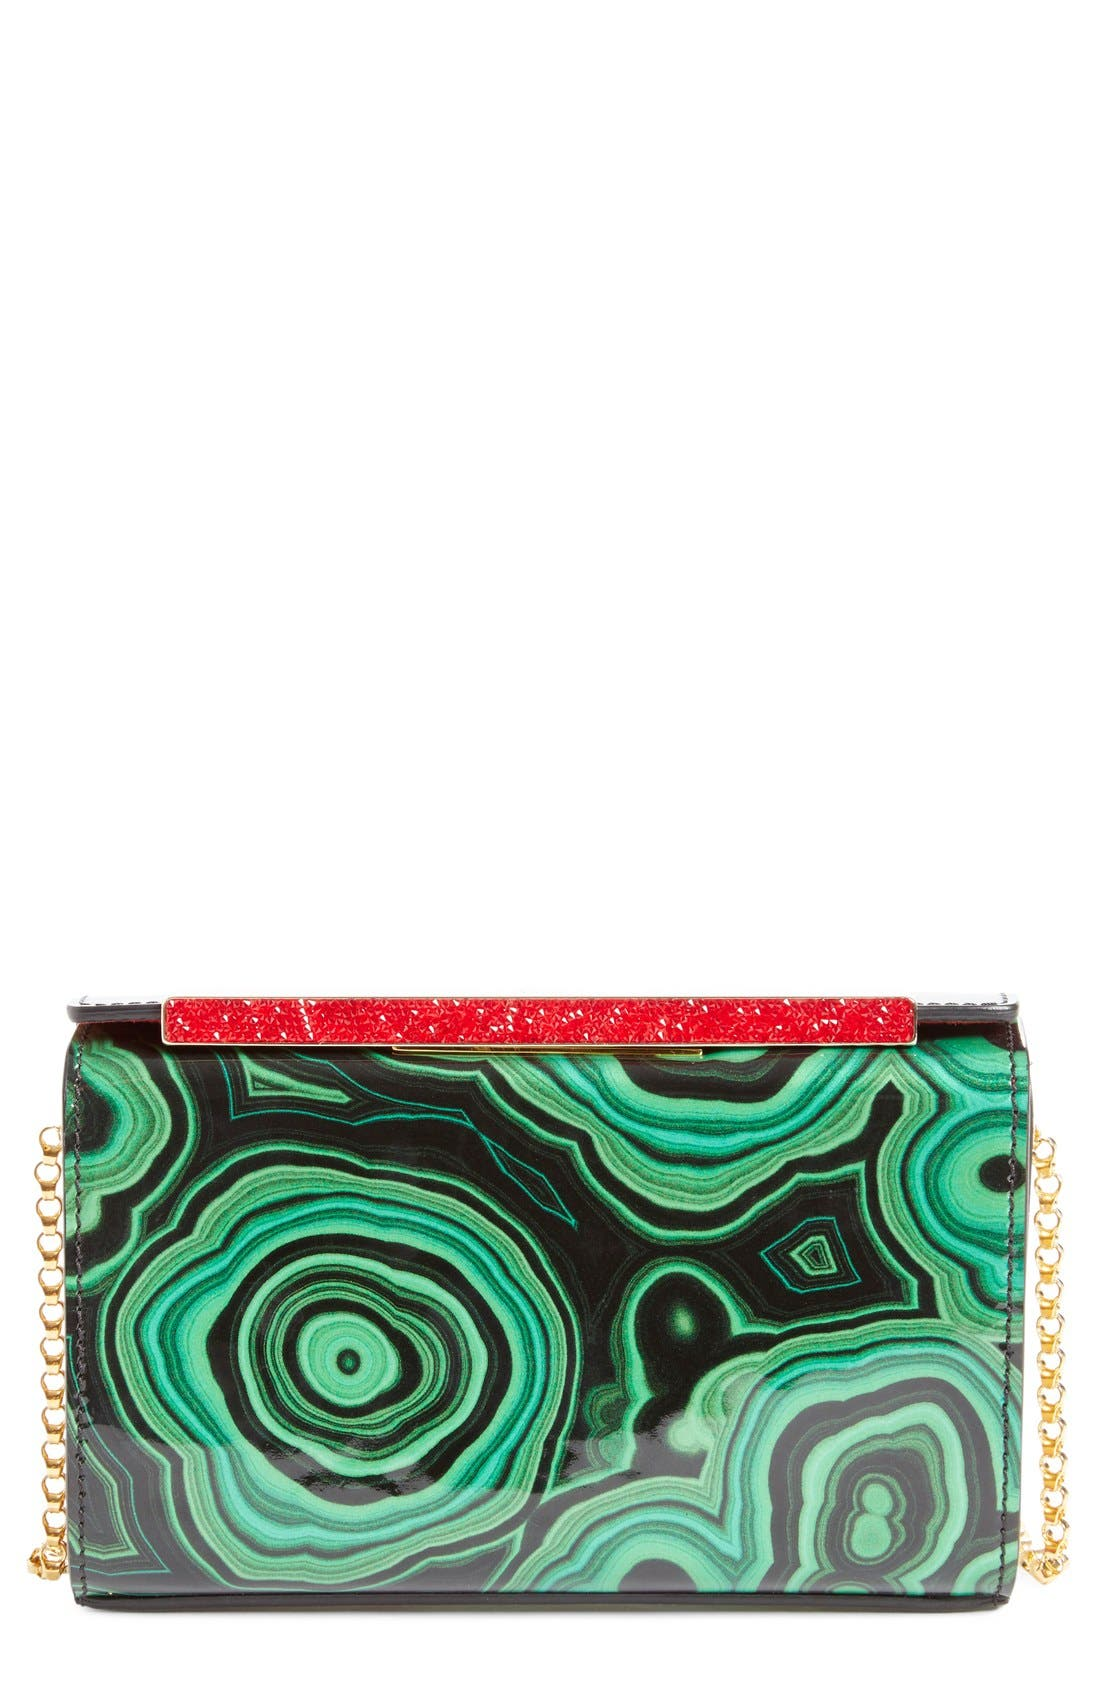 Main Image - Christian Louboutin 'Vanité' Printed Leather Clutch